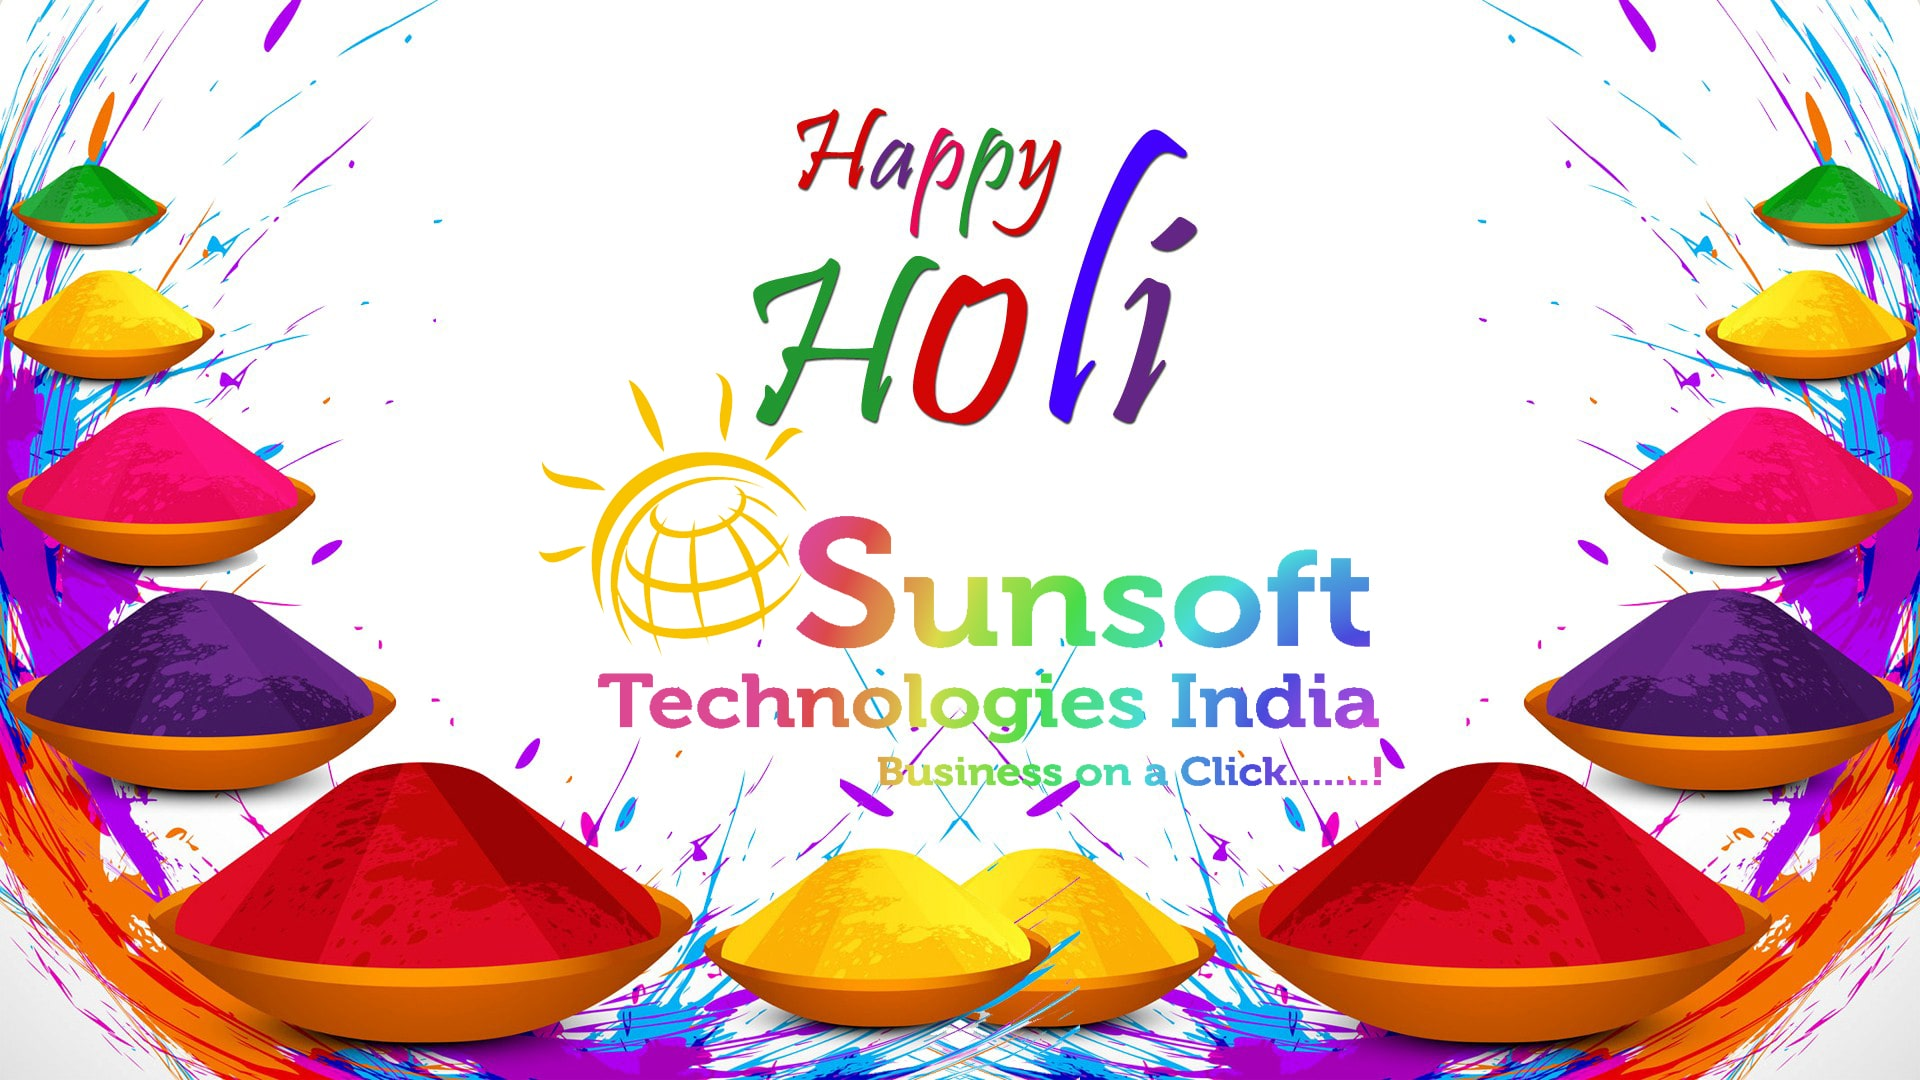 Sunsoft Technologies India